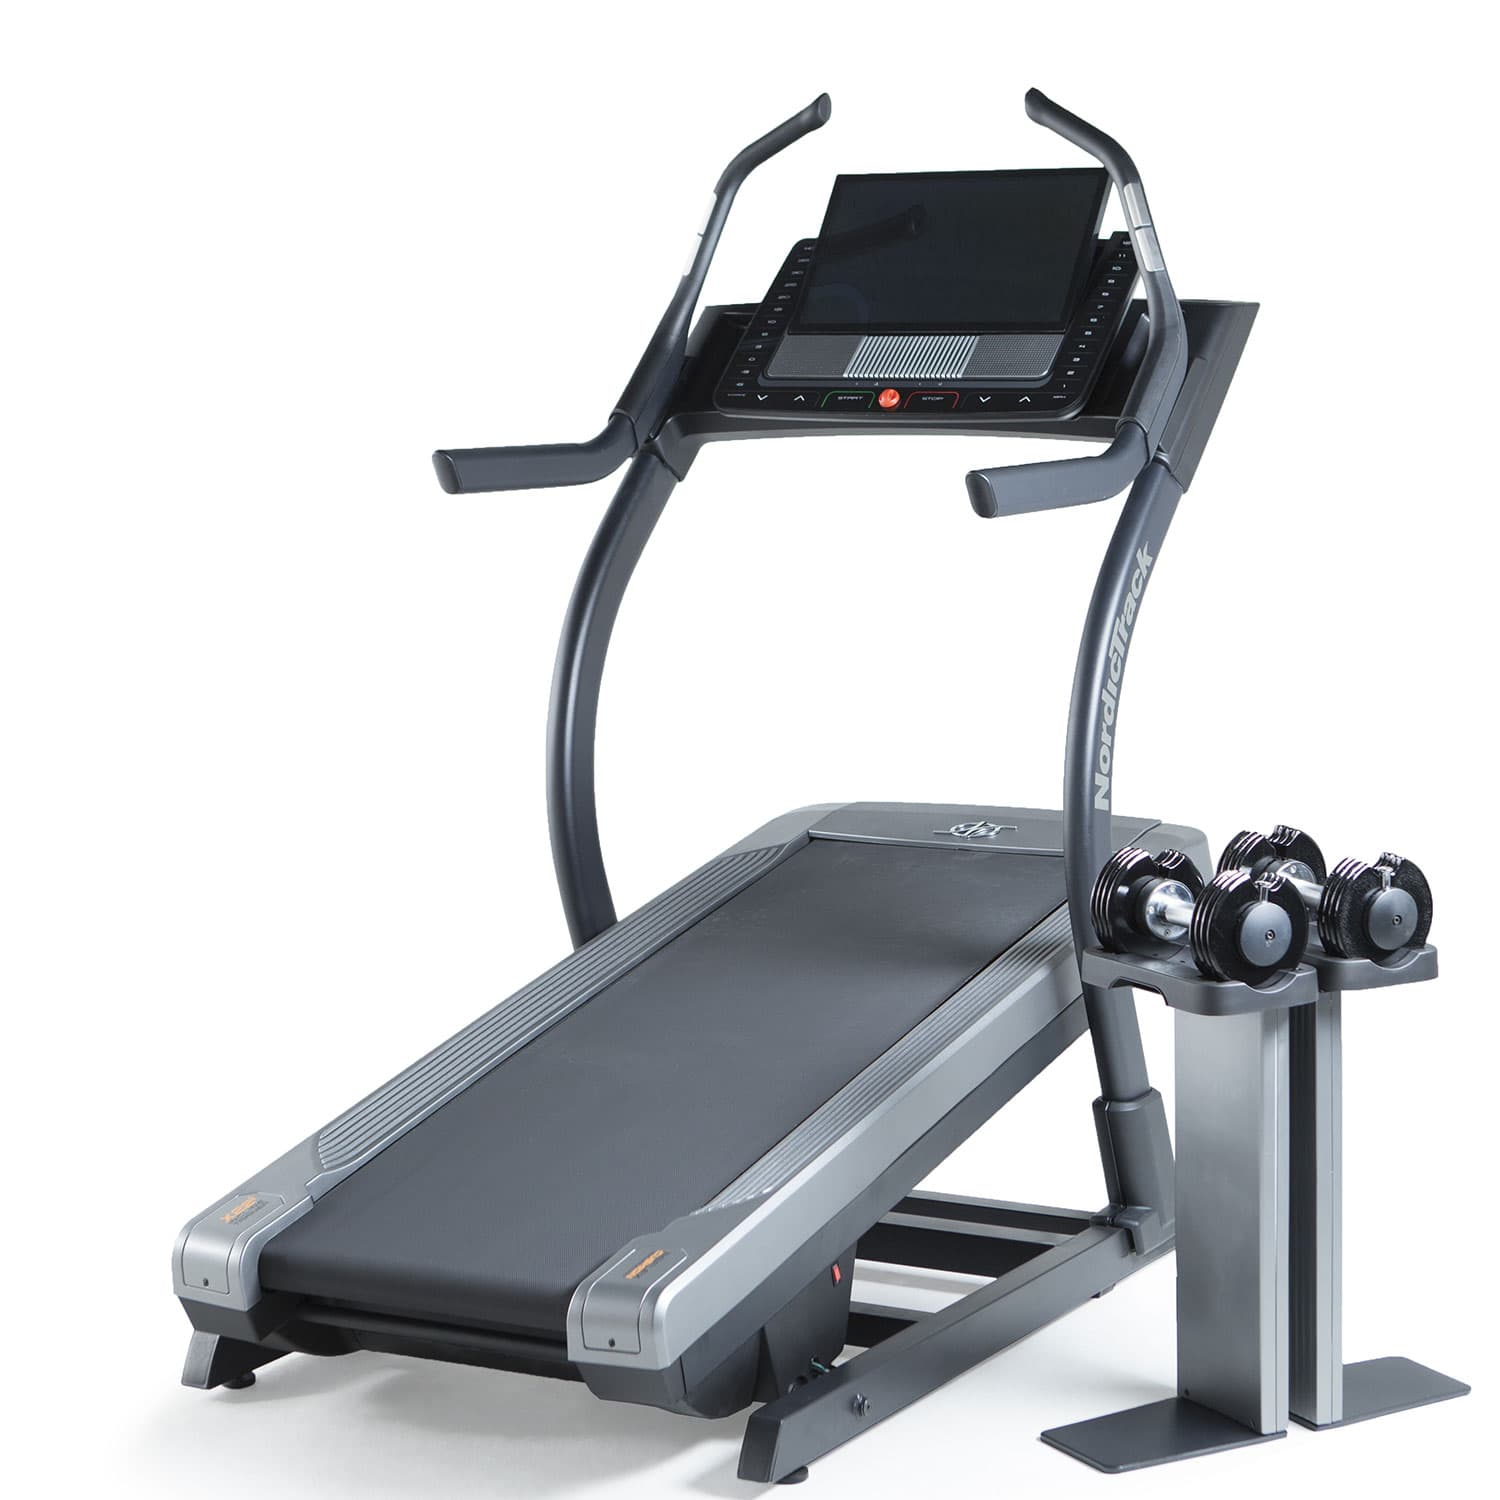 Беговая дорожка NordicTrack Incline Trainer X22i. Фото N3